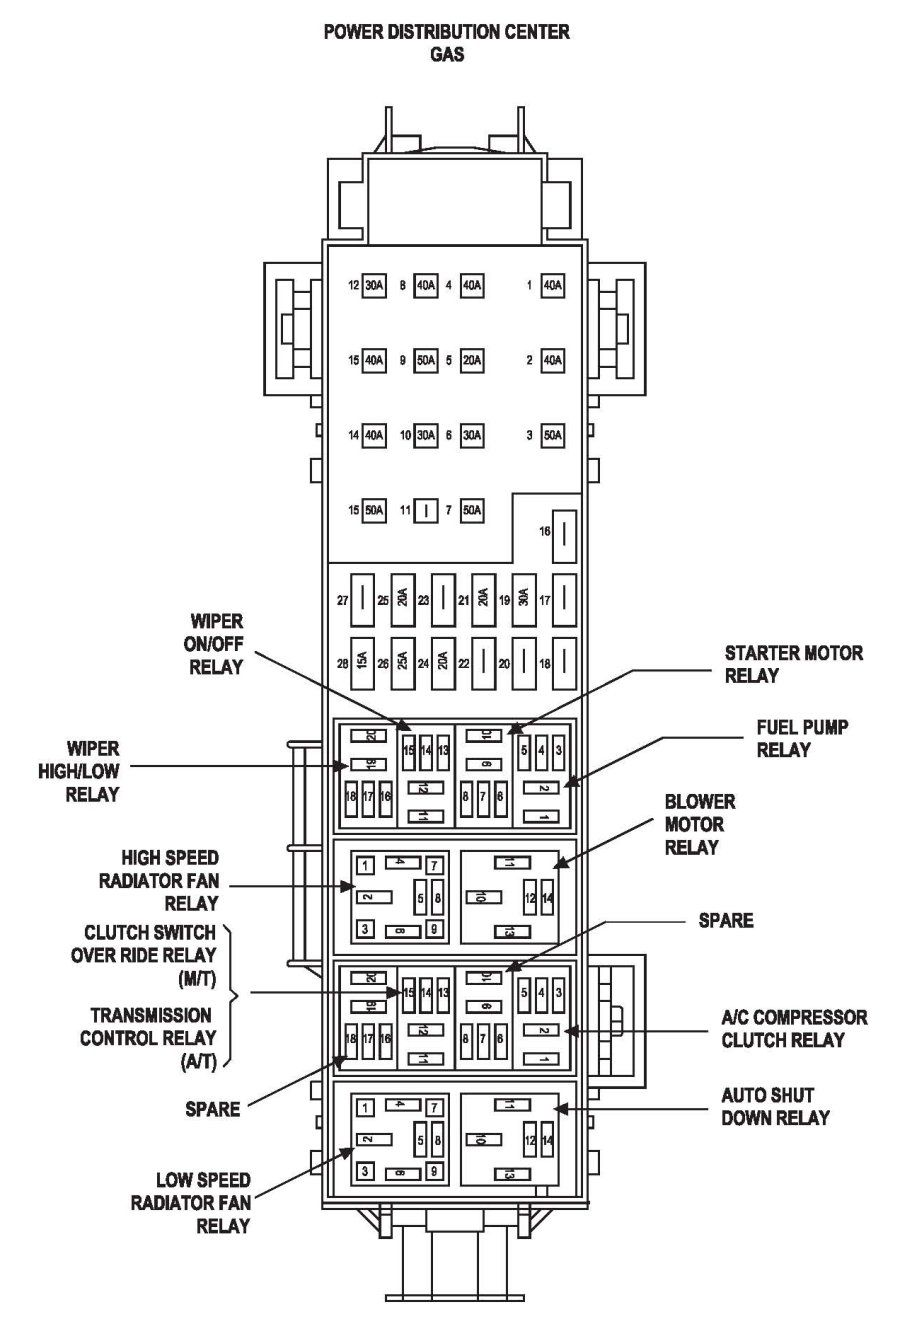 b3536c3739783eb19f827744cc42c3c4 jeep liberty fuse box diagram image details jeep liberty 2007 jeep commander interior fuse box diagram at gsmportal.co